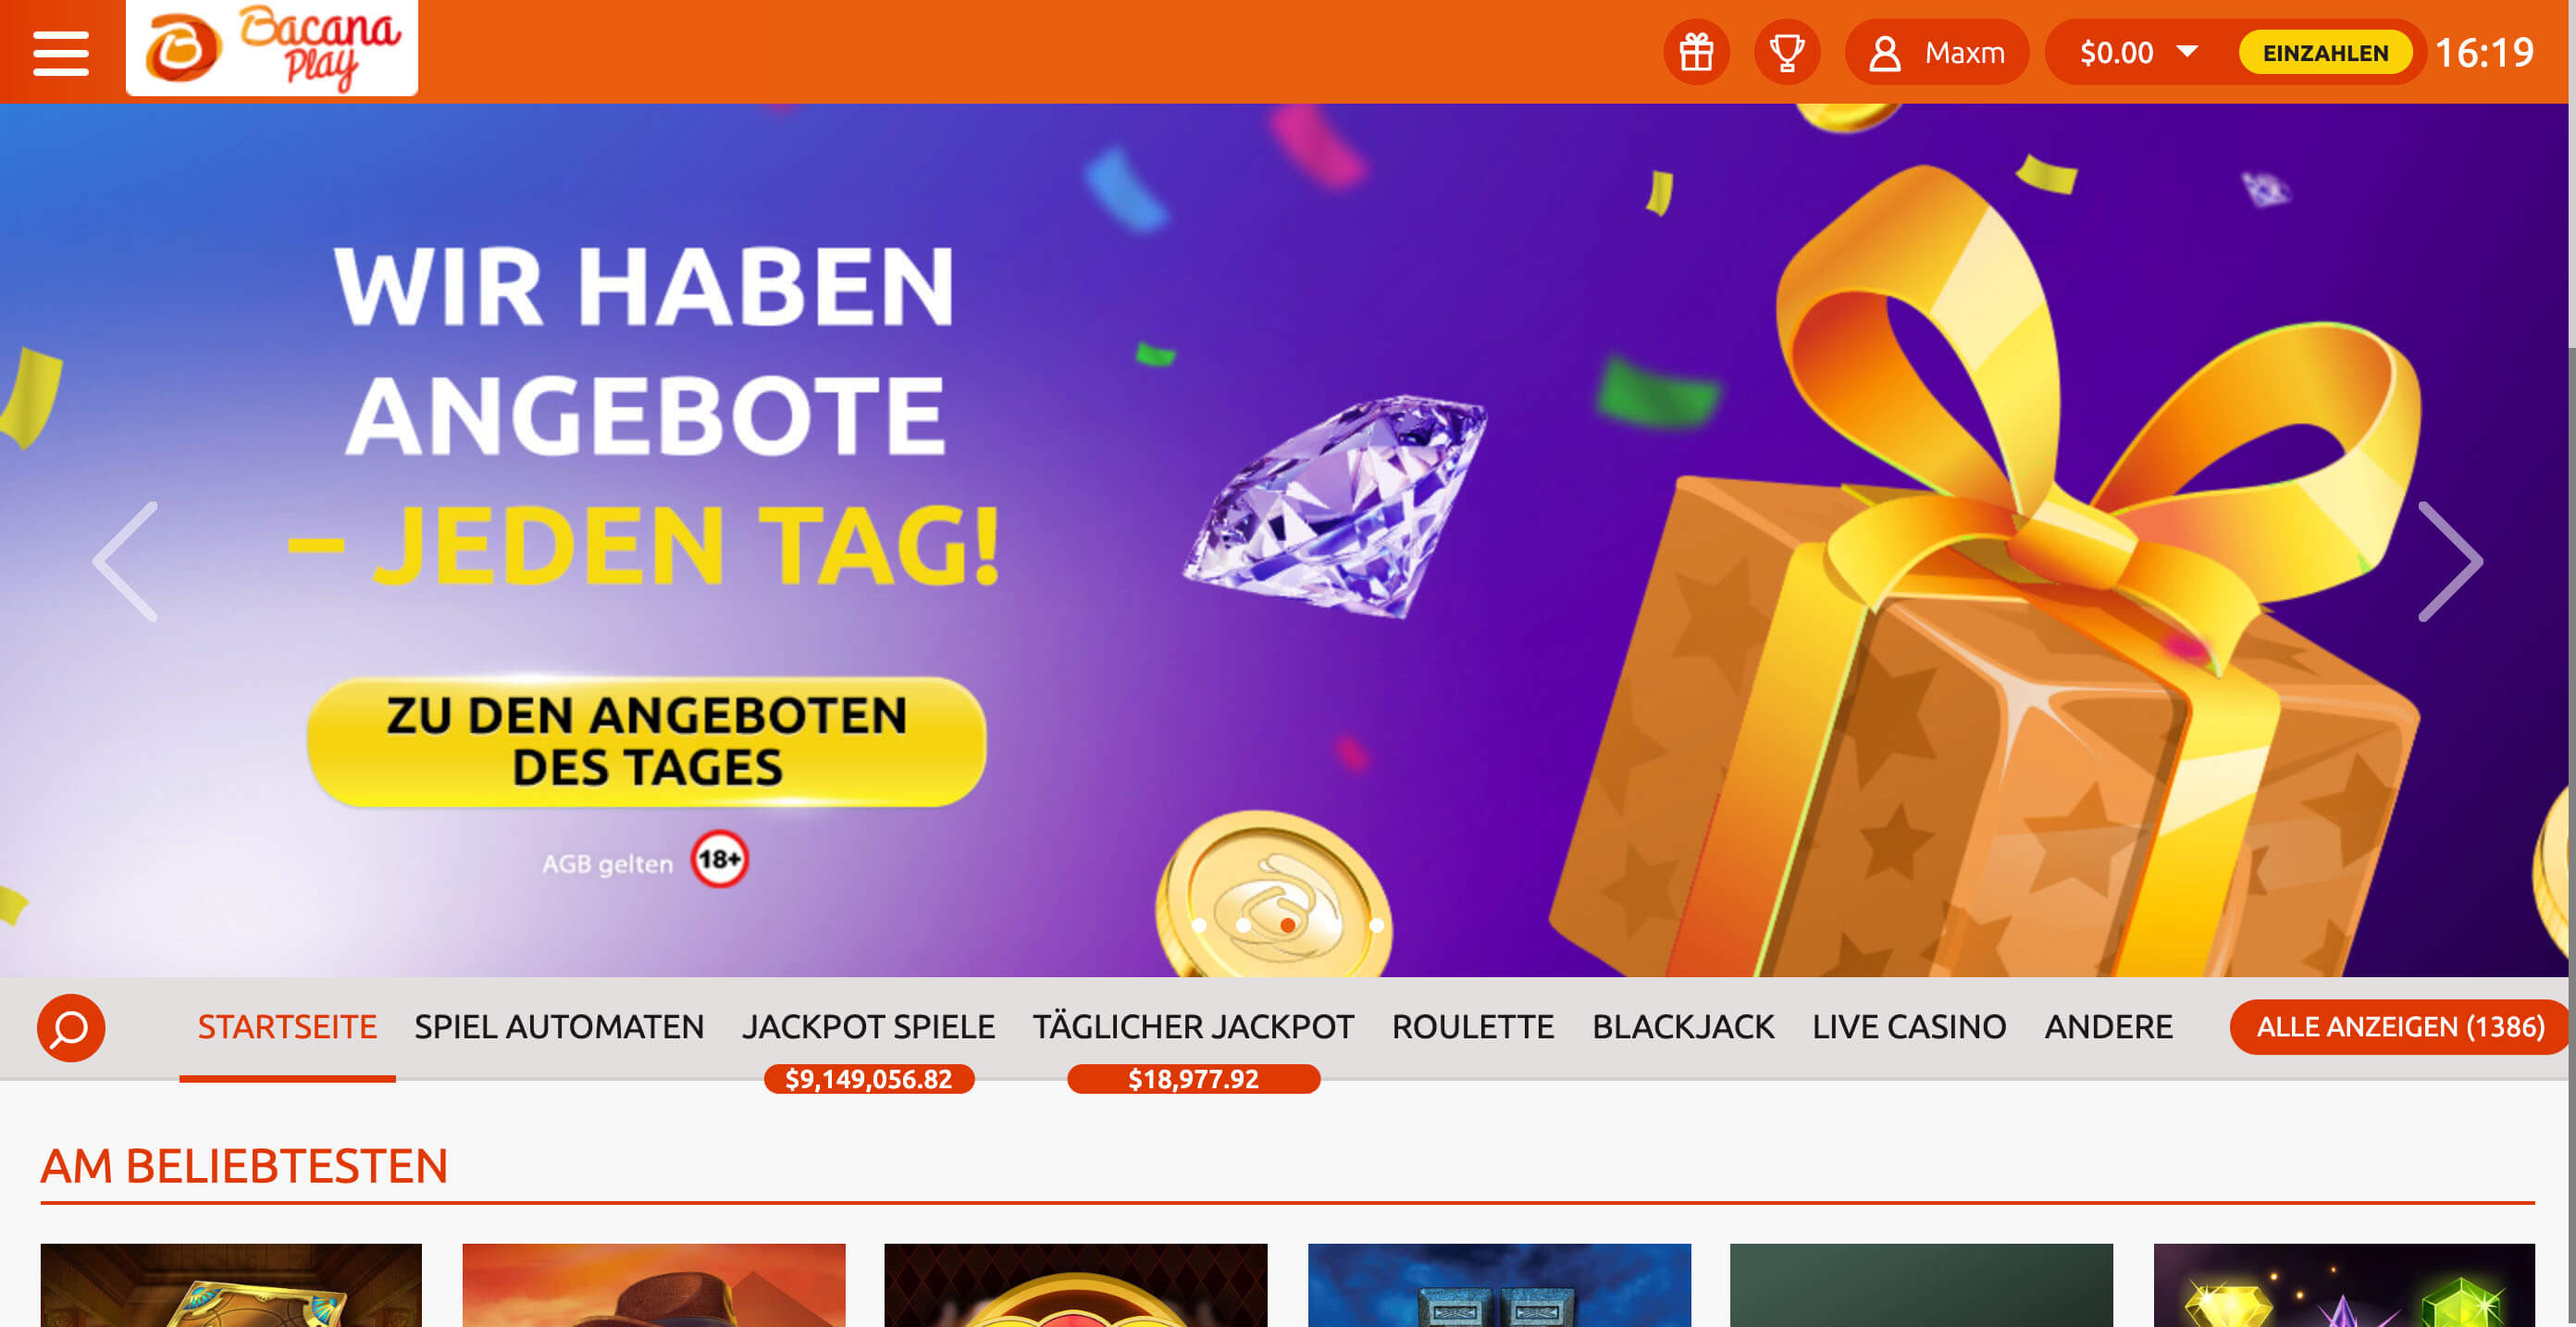 Screenshot der Desktop Homepage des BacanaPlay Online Casinos